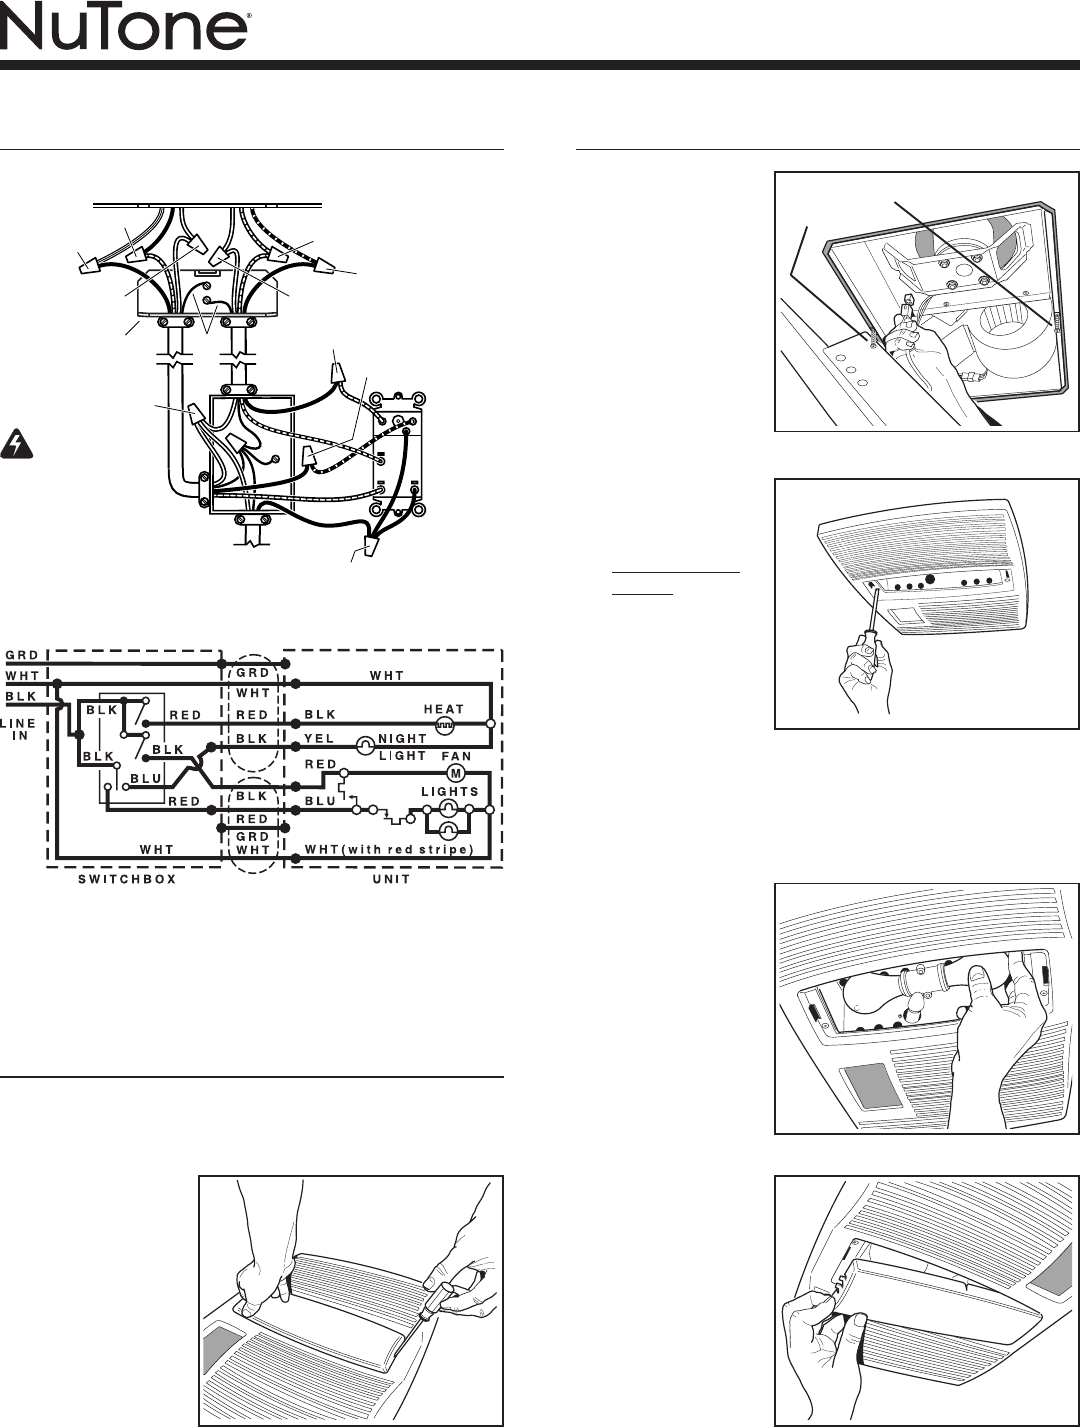 5f2a9d9b 5305 48ad 9f56 b994619d7b24 bg3 page 3 of nutone fan qtxn110hl user guide manualsonline com nutone fan wiring diagram at bayanpartner.co